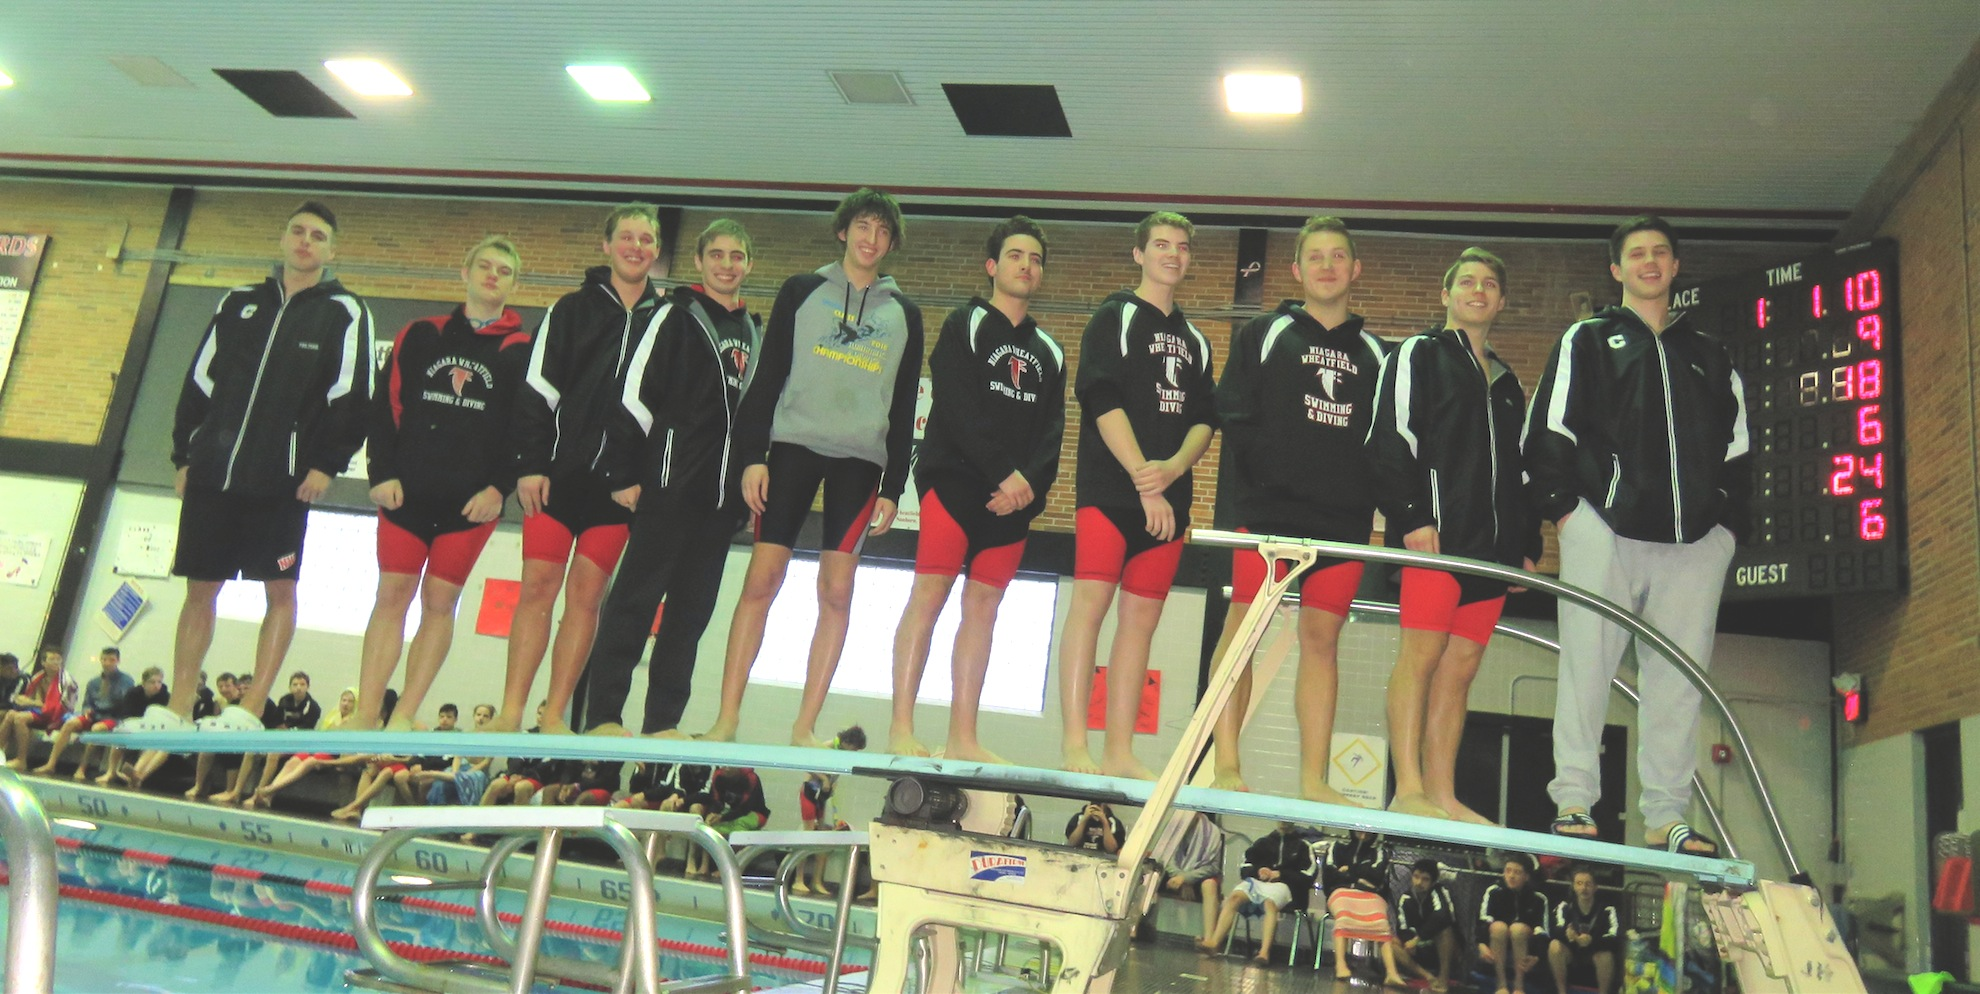 The 10 seniors from the Niagara-Wheatfield boys swimming and diving team stand atop the diving board.